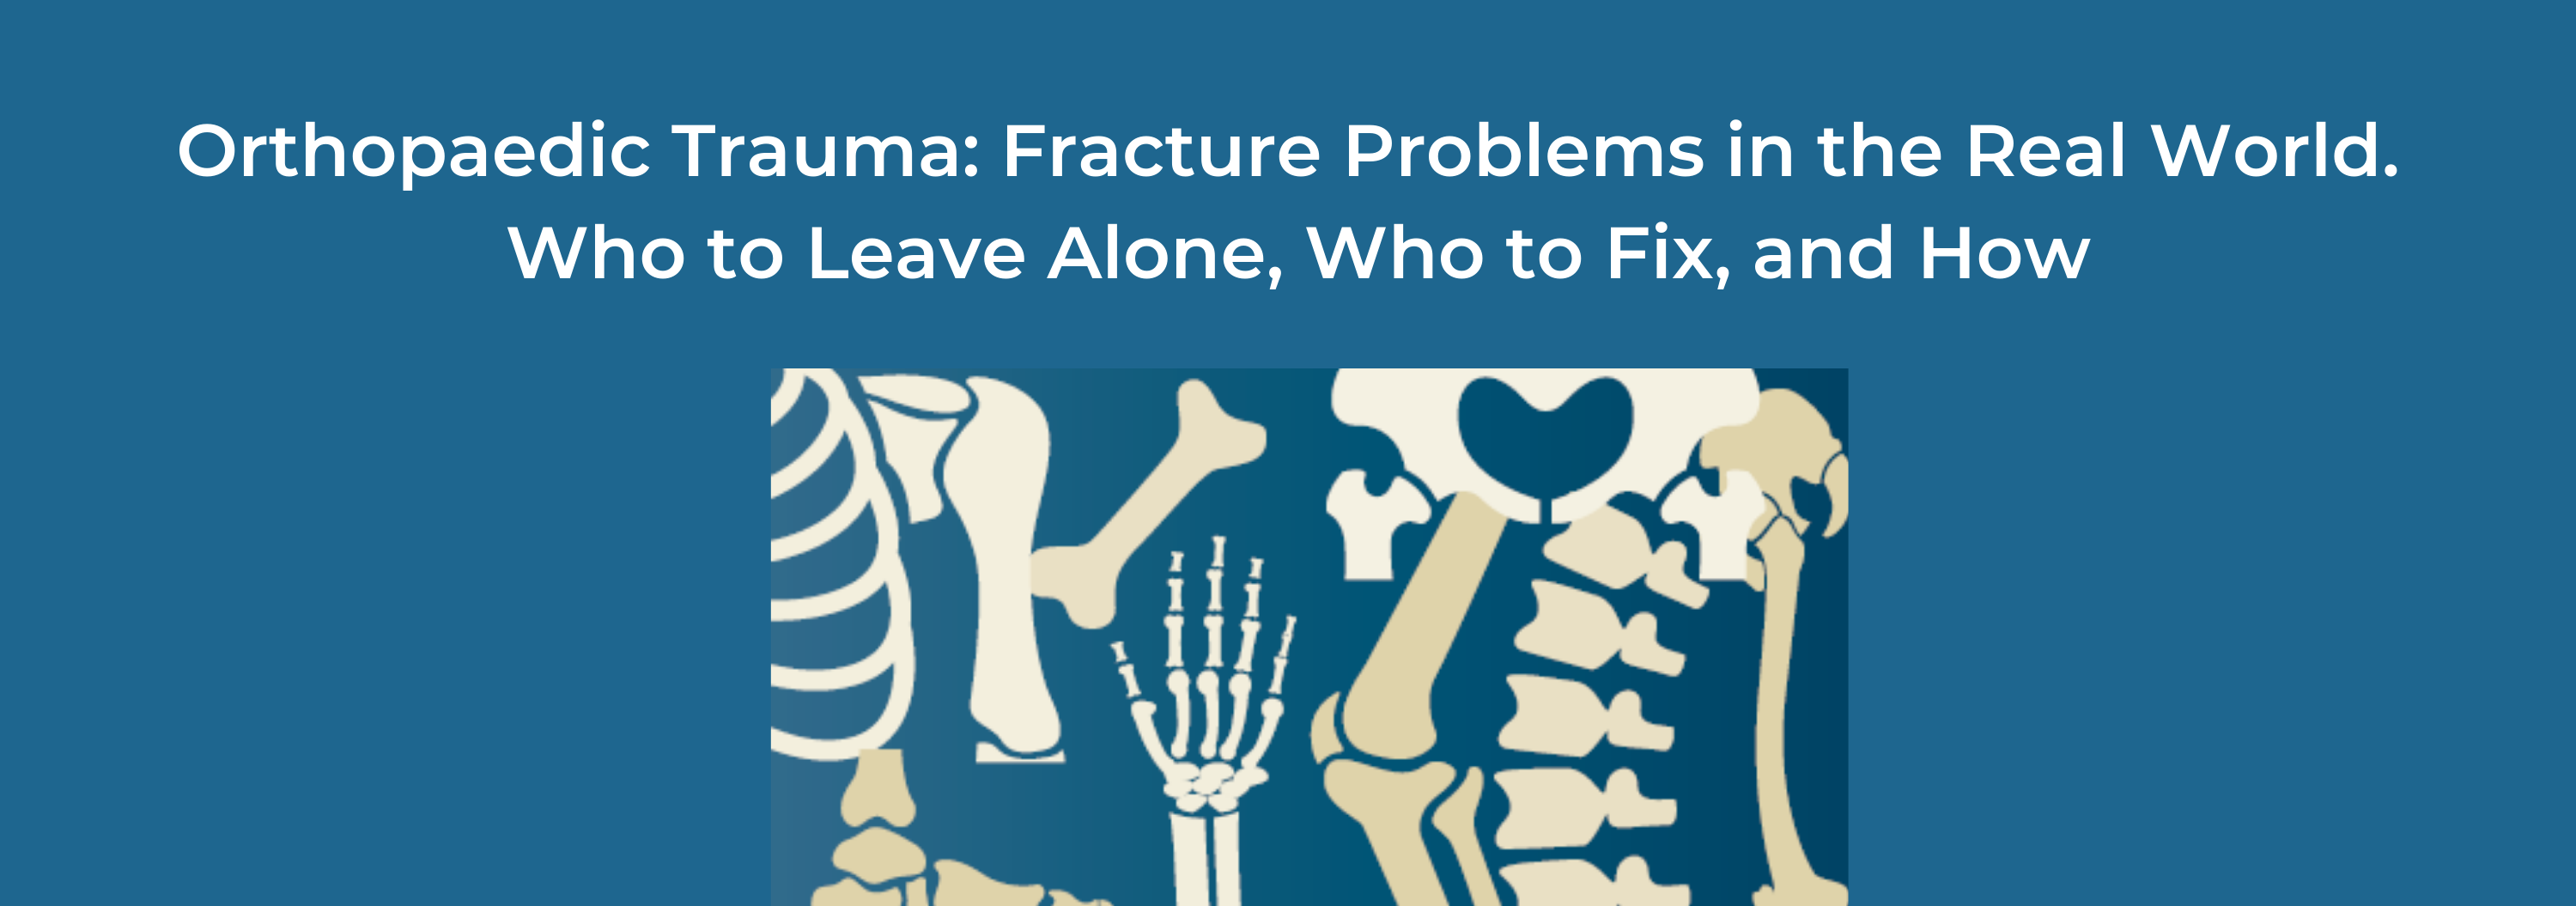 2019 Orthopaedic Trauma: Fracture Problems in the Real World. Who to Leave Alone, Who to Fix, and How. Banner